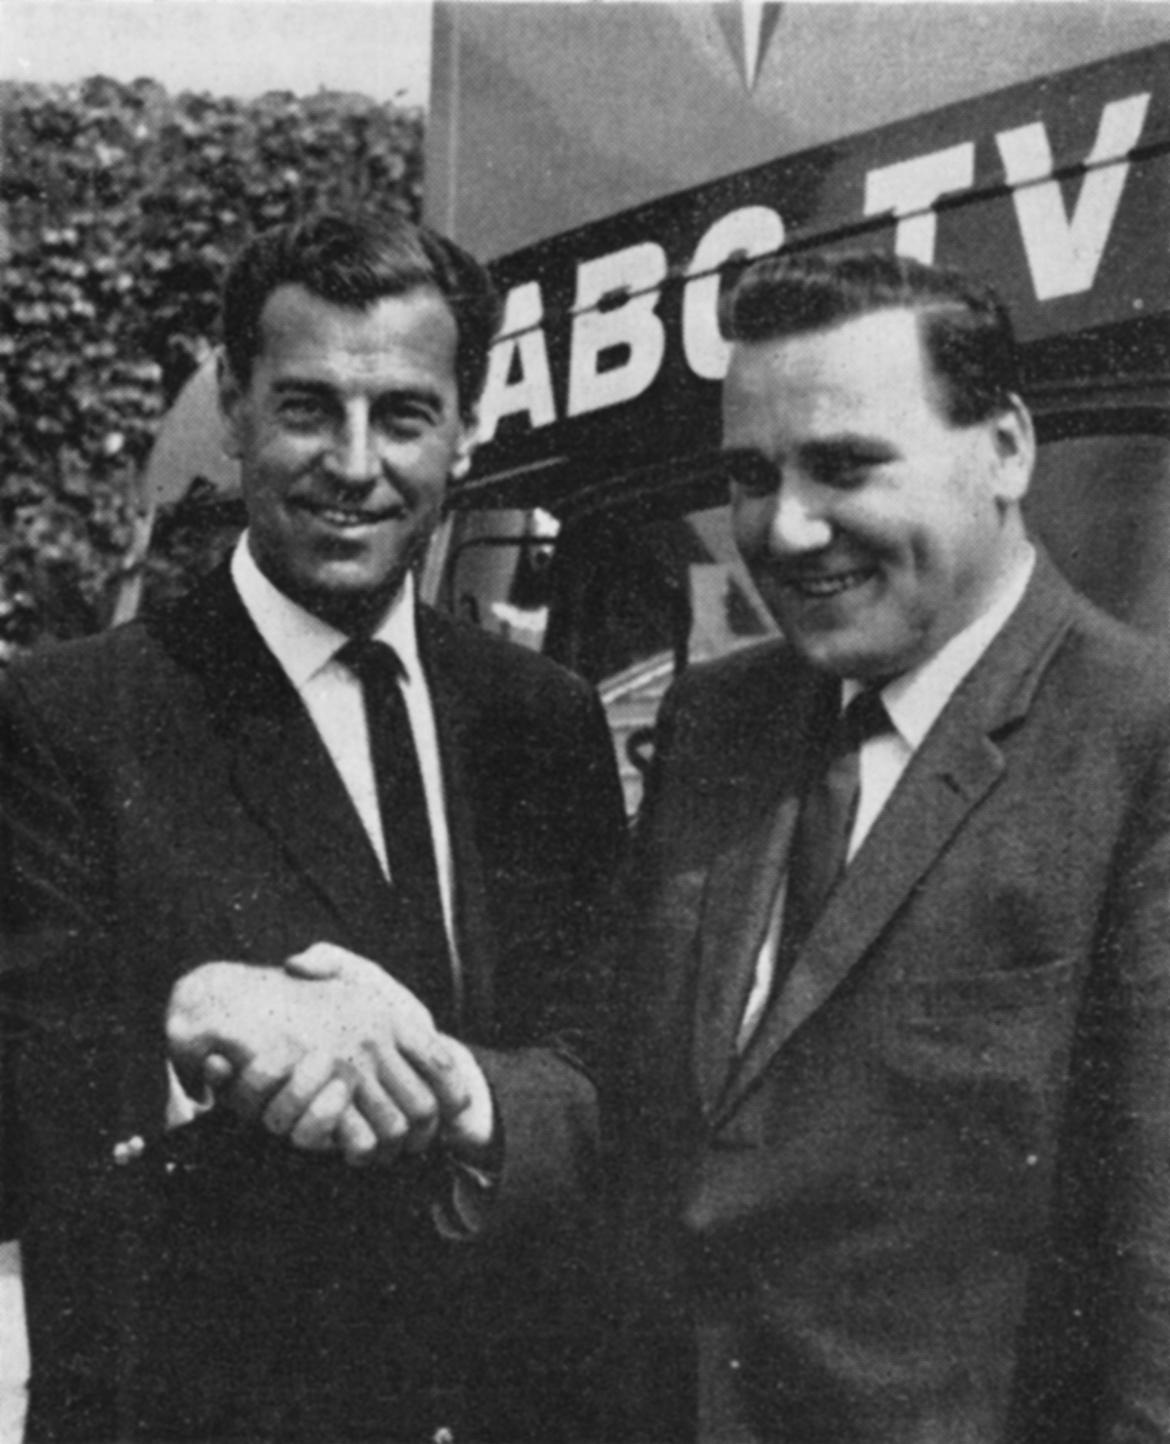 Two men shake hands in front of an OB unit